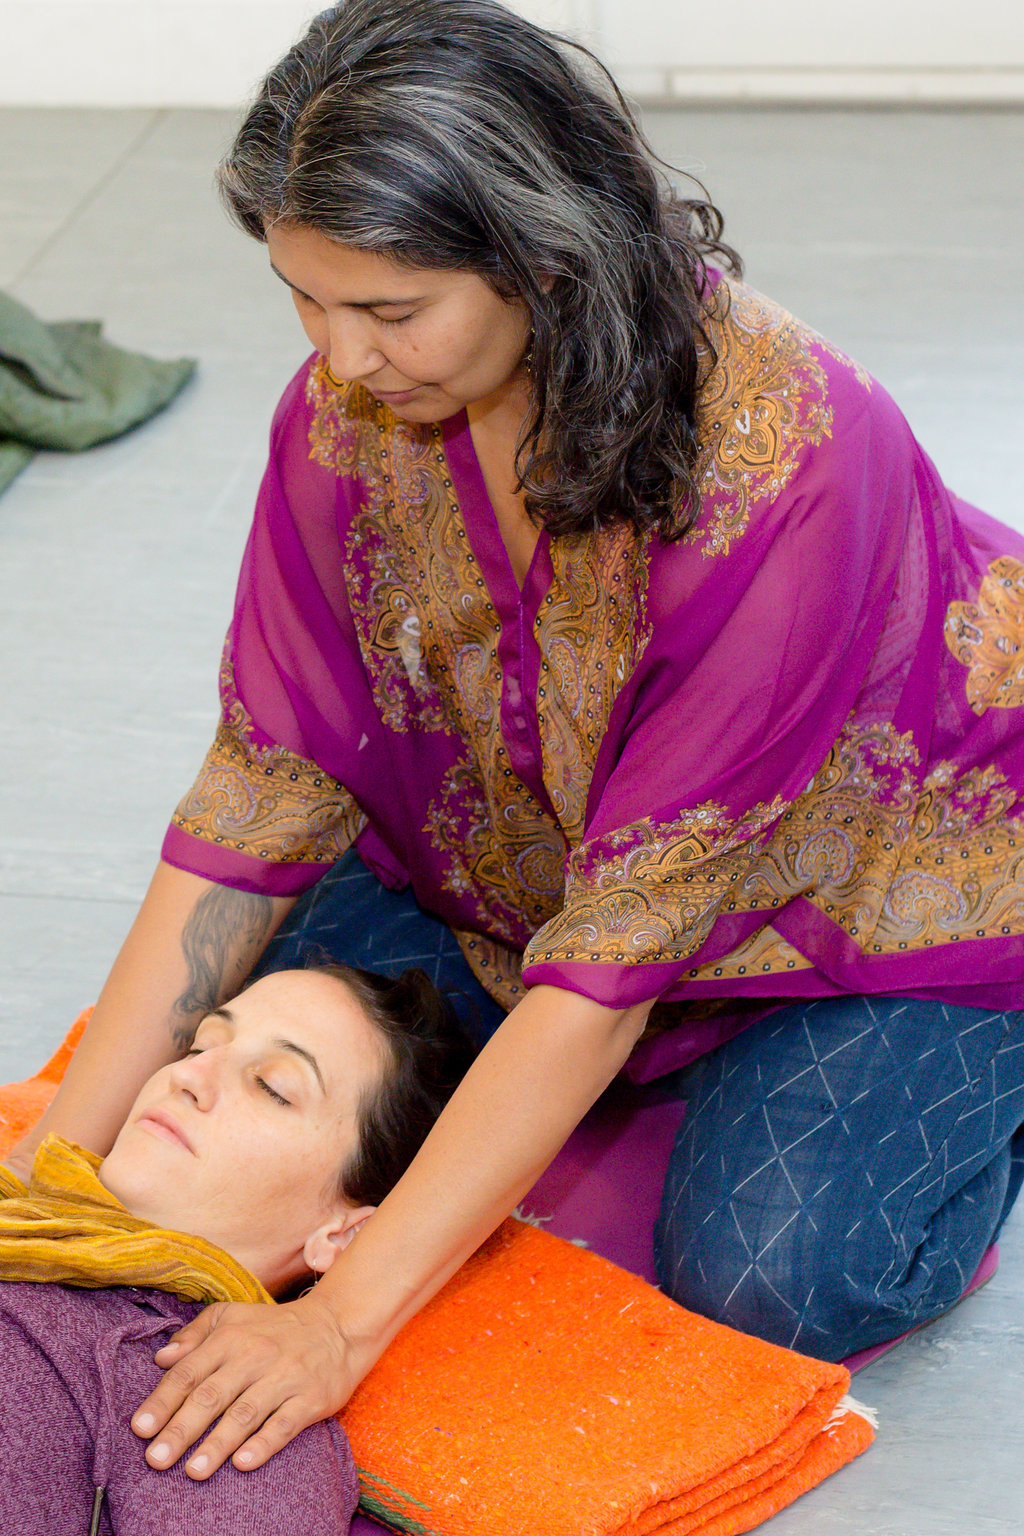 Nubia Teixeira leads Reiki Initiation for Women February 16-17 at YogaWorks Larkspur